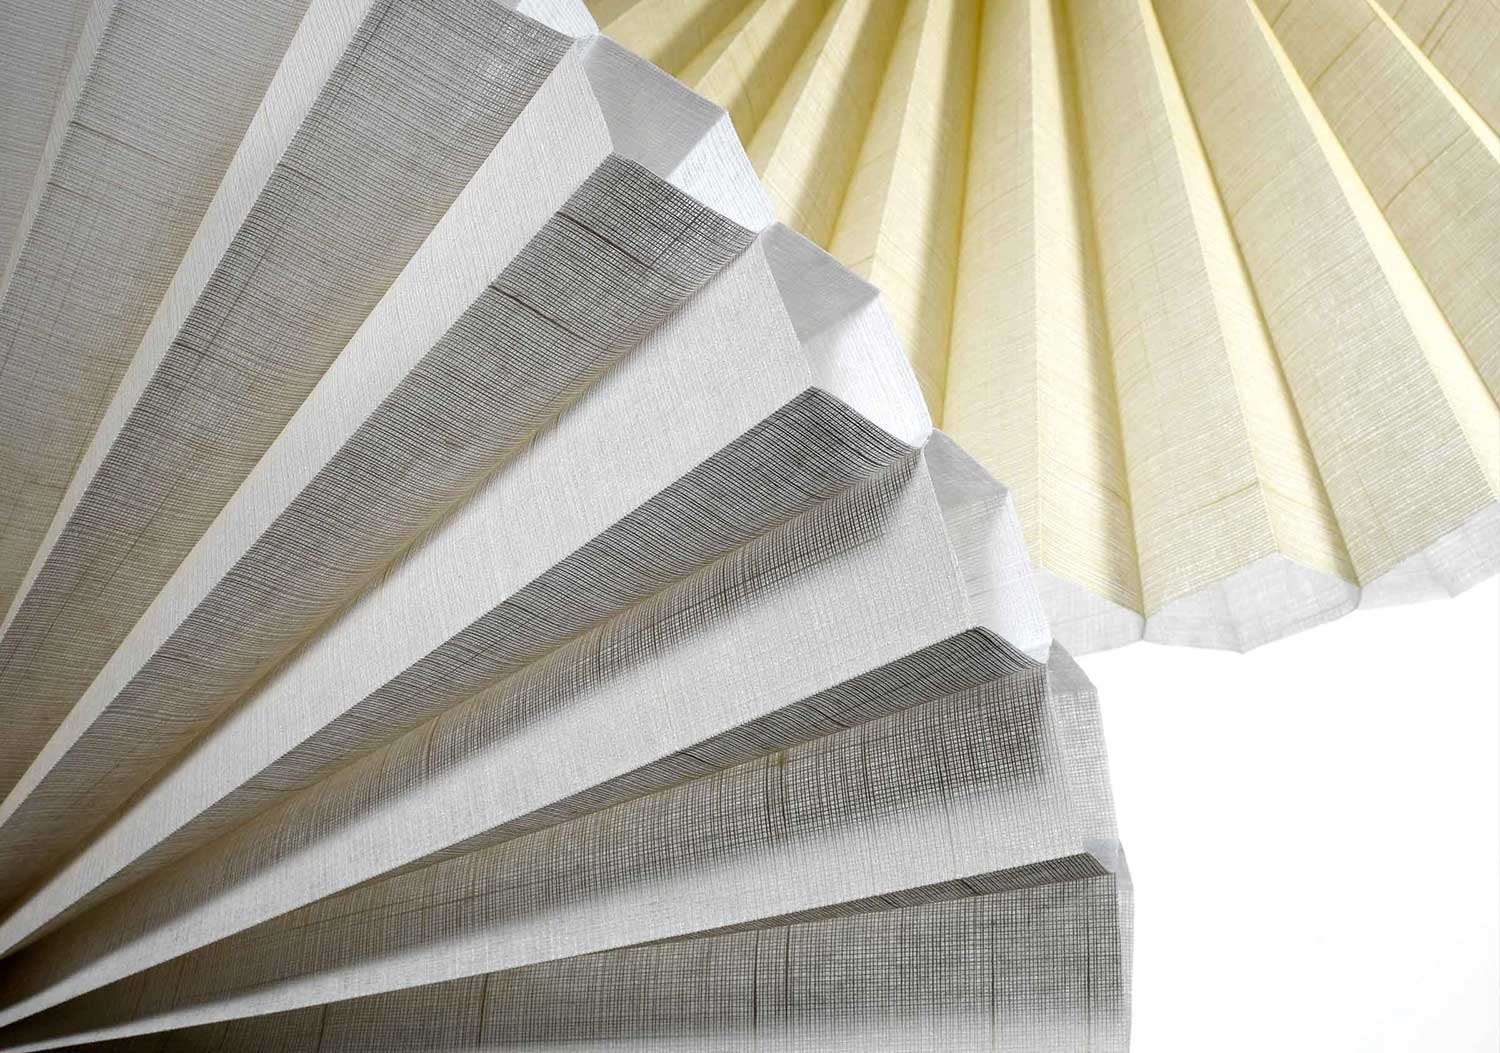 Duette Color And Texture_5. Honeycomb Shades ...